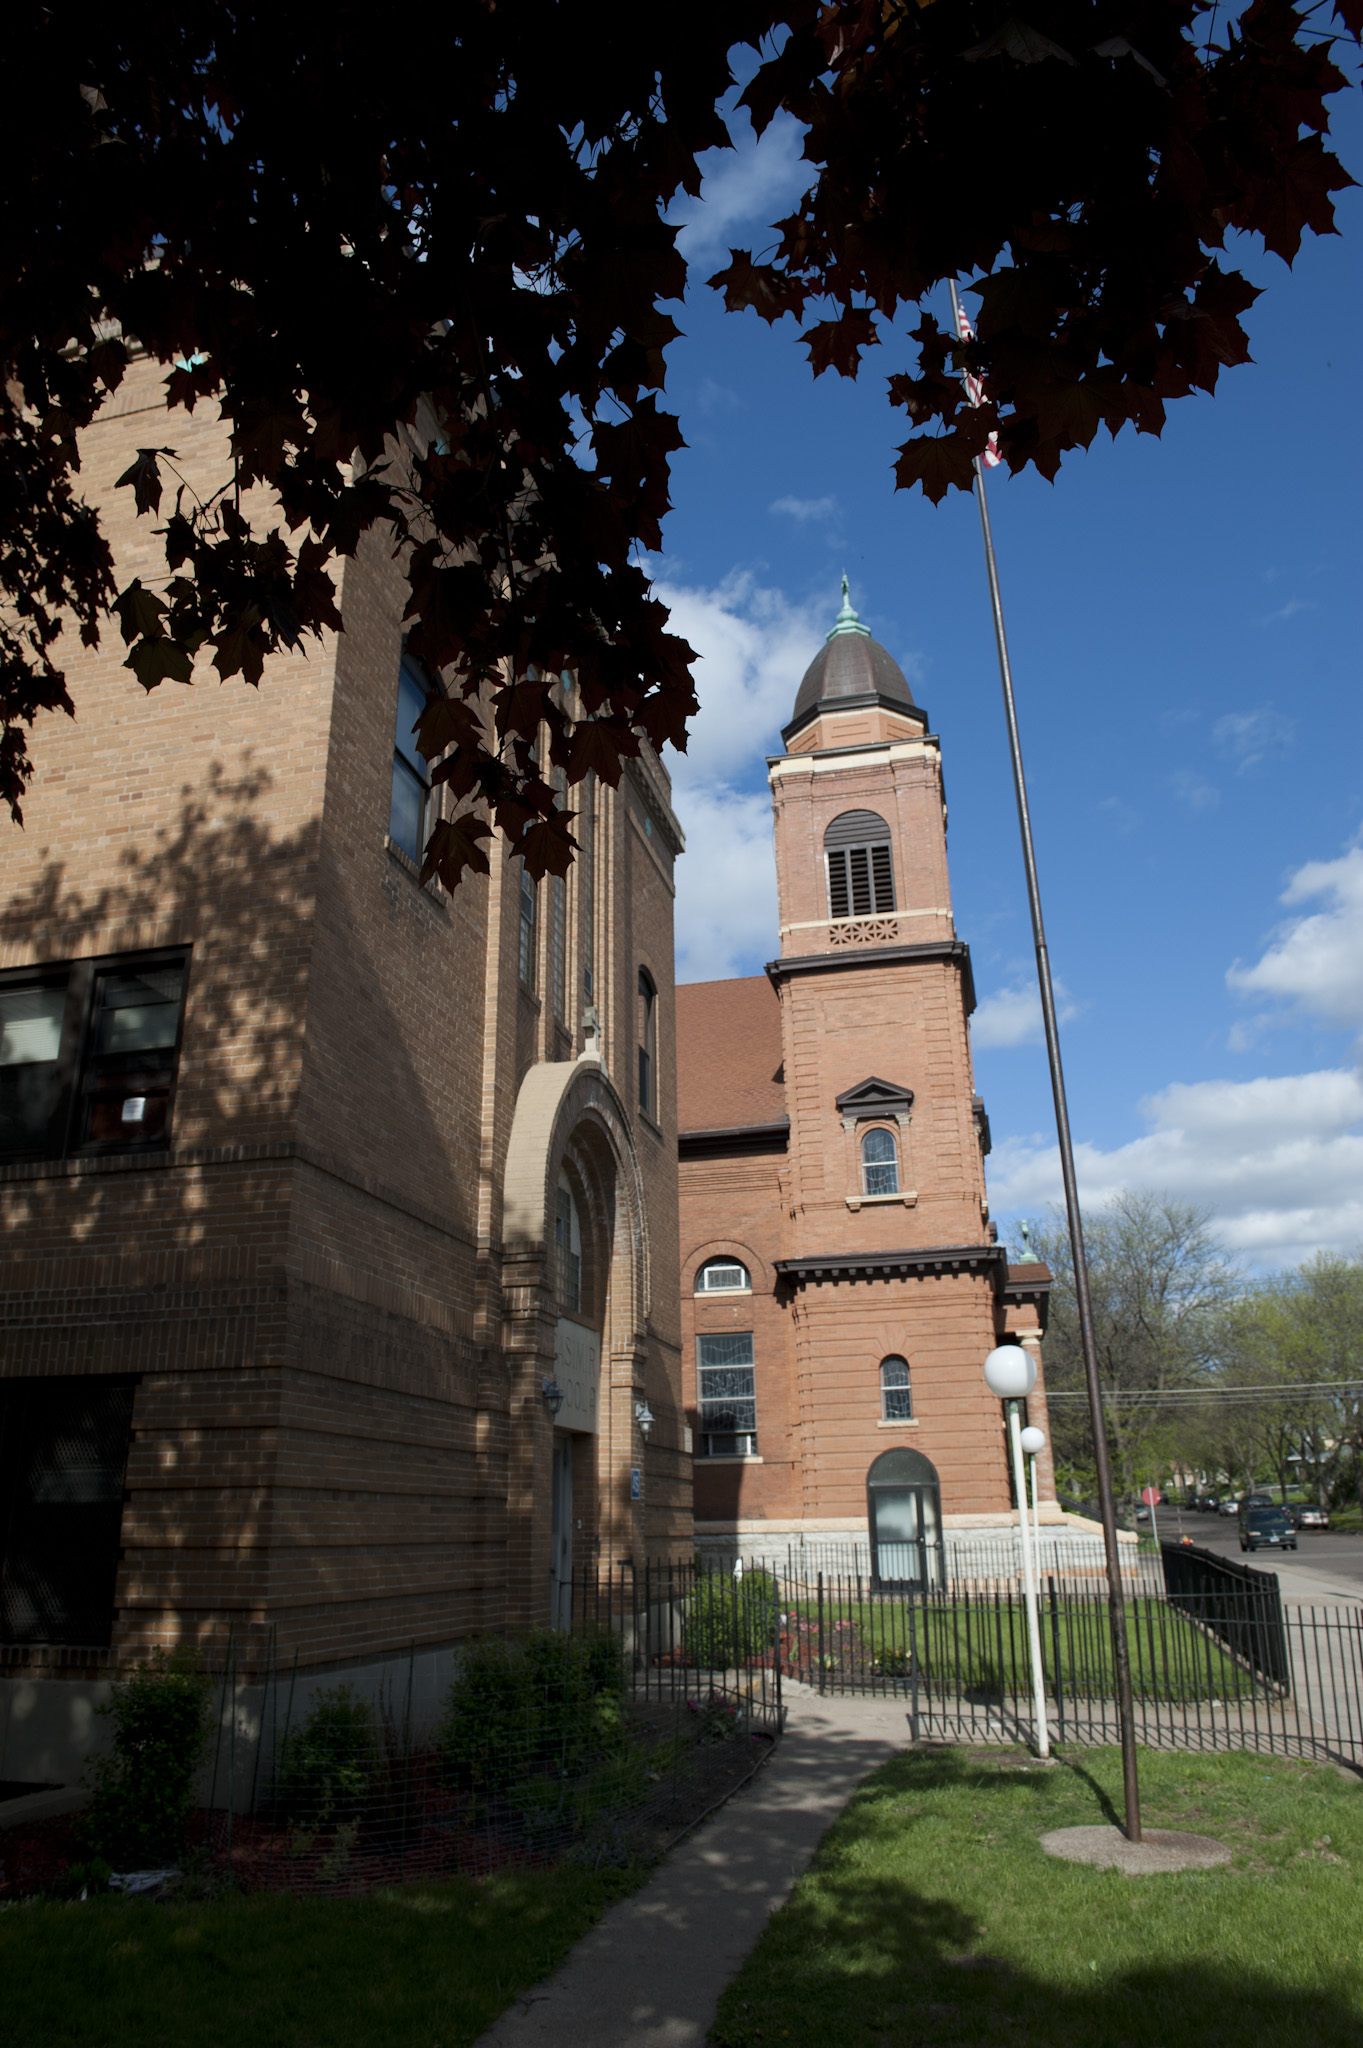 St. Casmir's Catholic Church and School next door